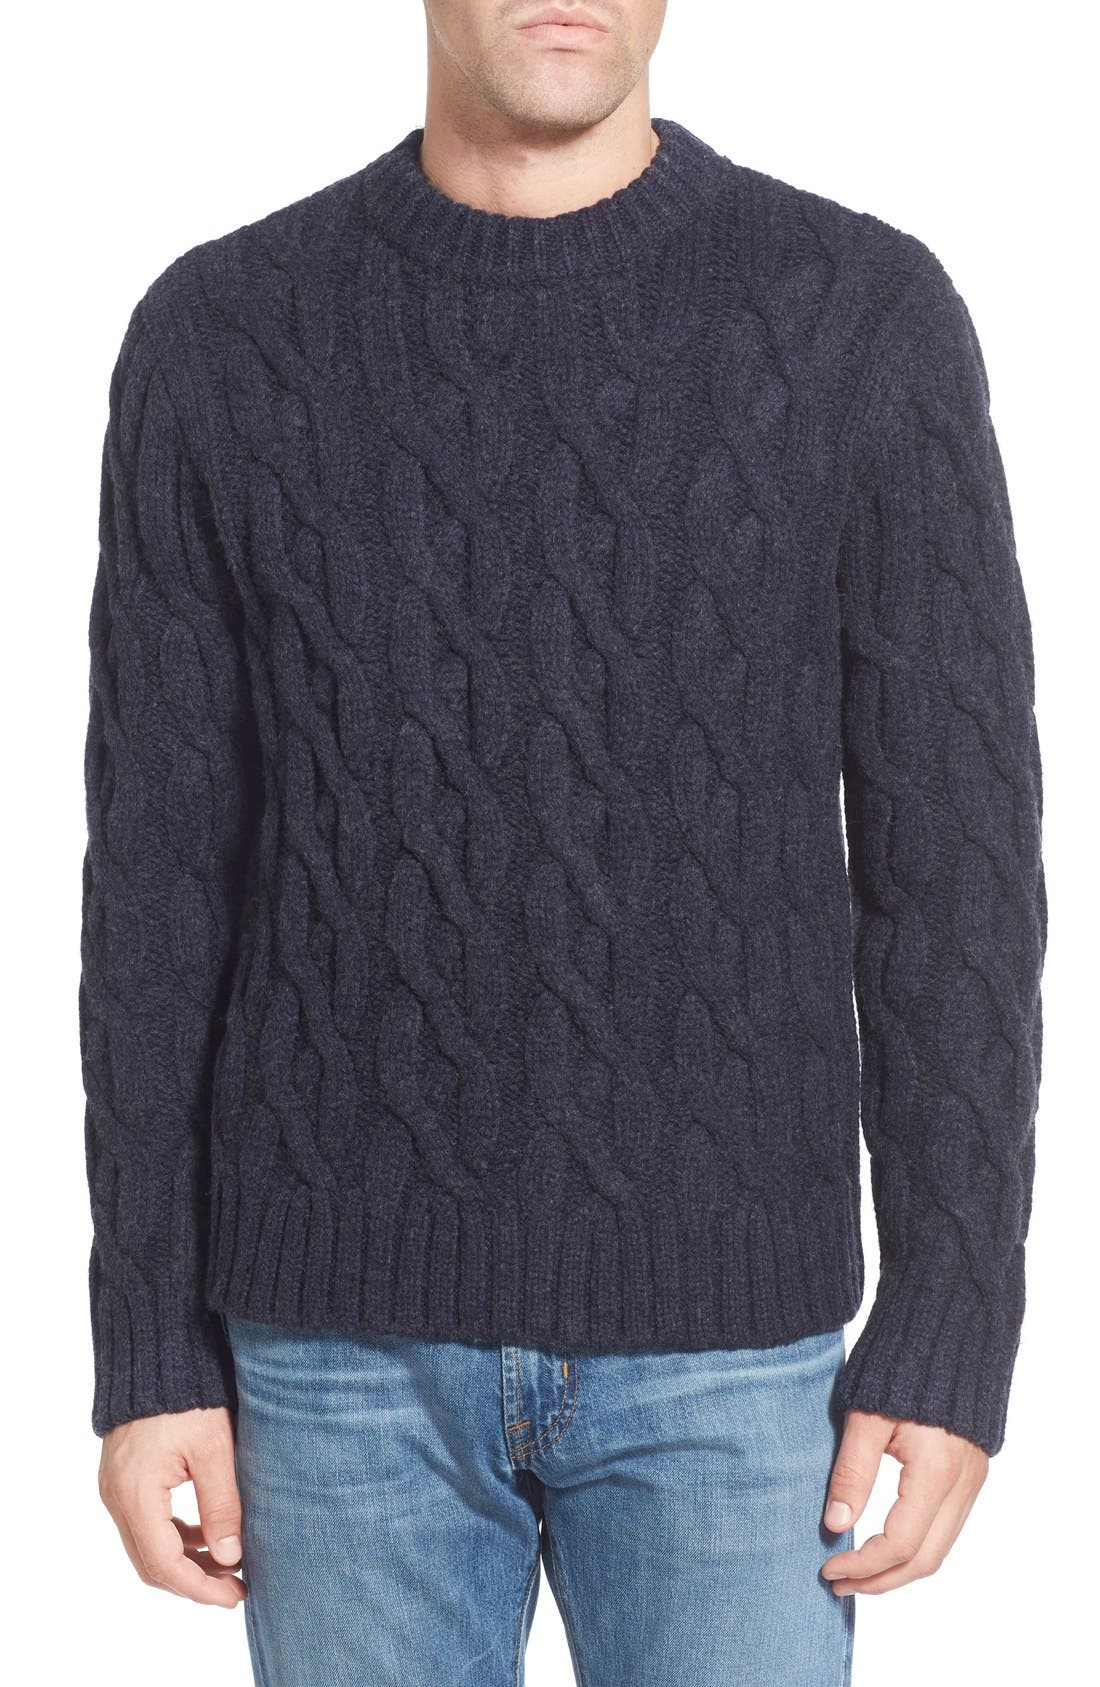 Regular Fit Cable Knit Crewneck Wool Blend Sweater,                         Main,                         color, Navy